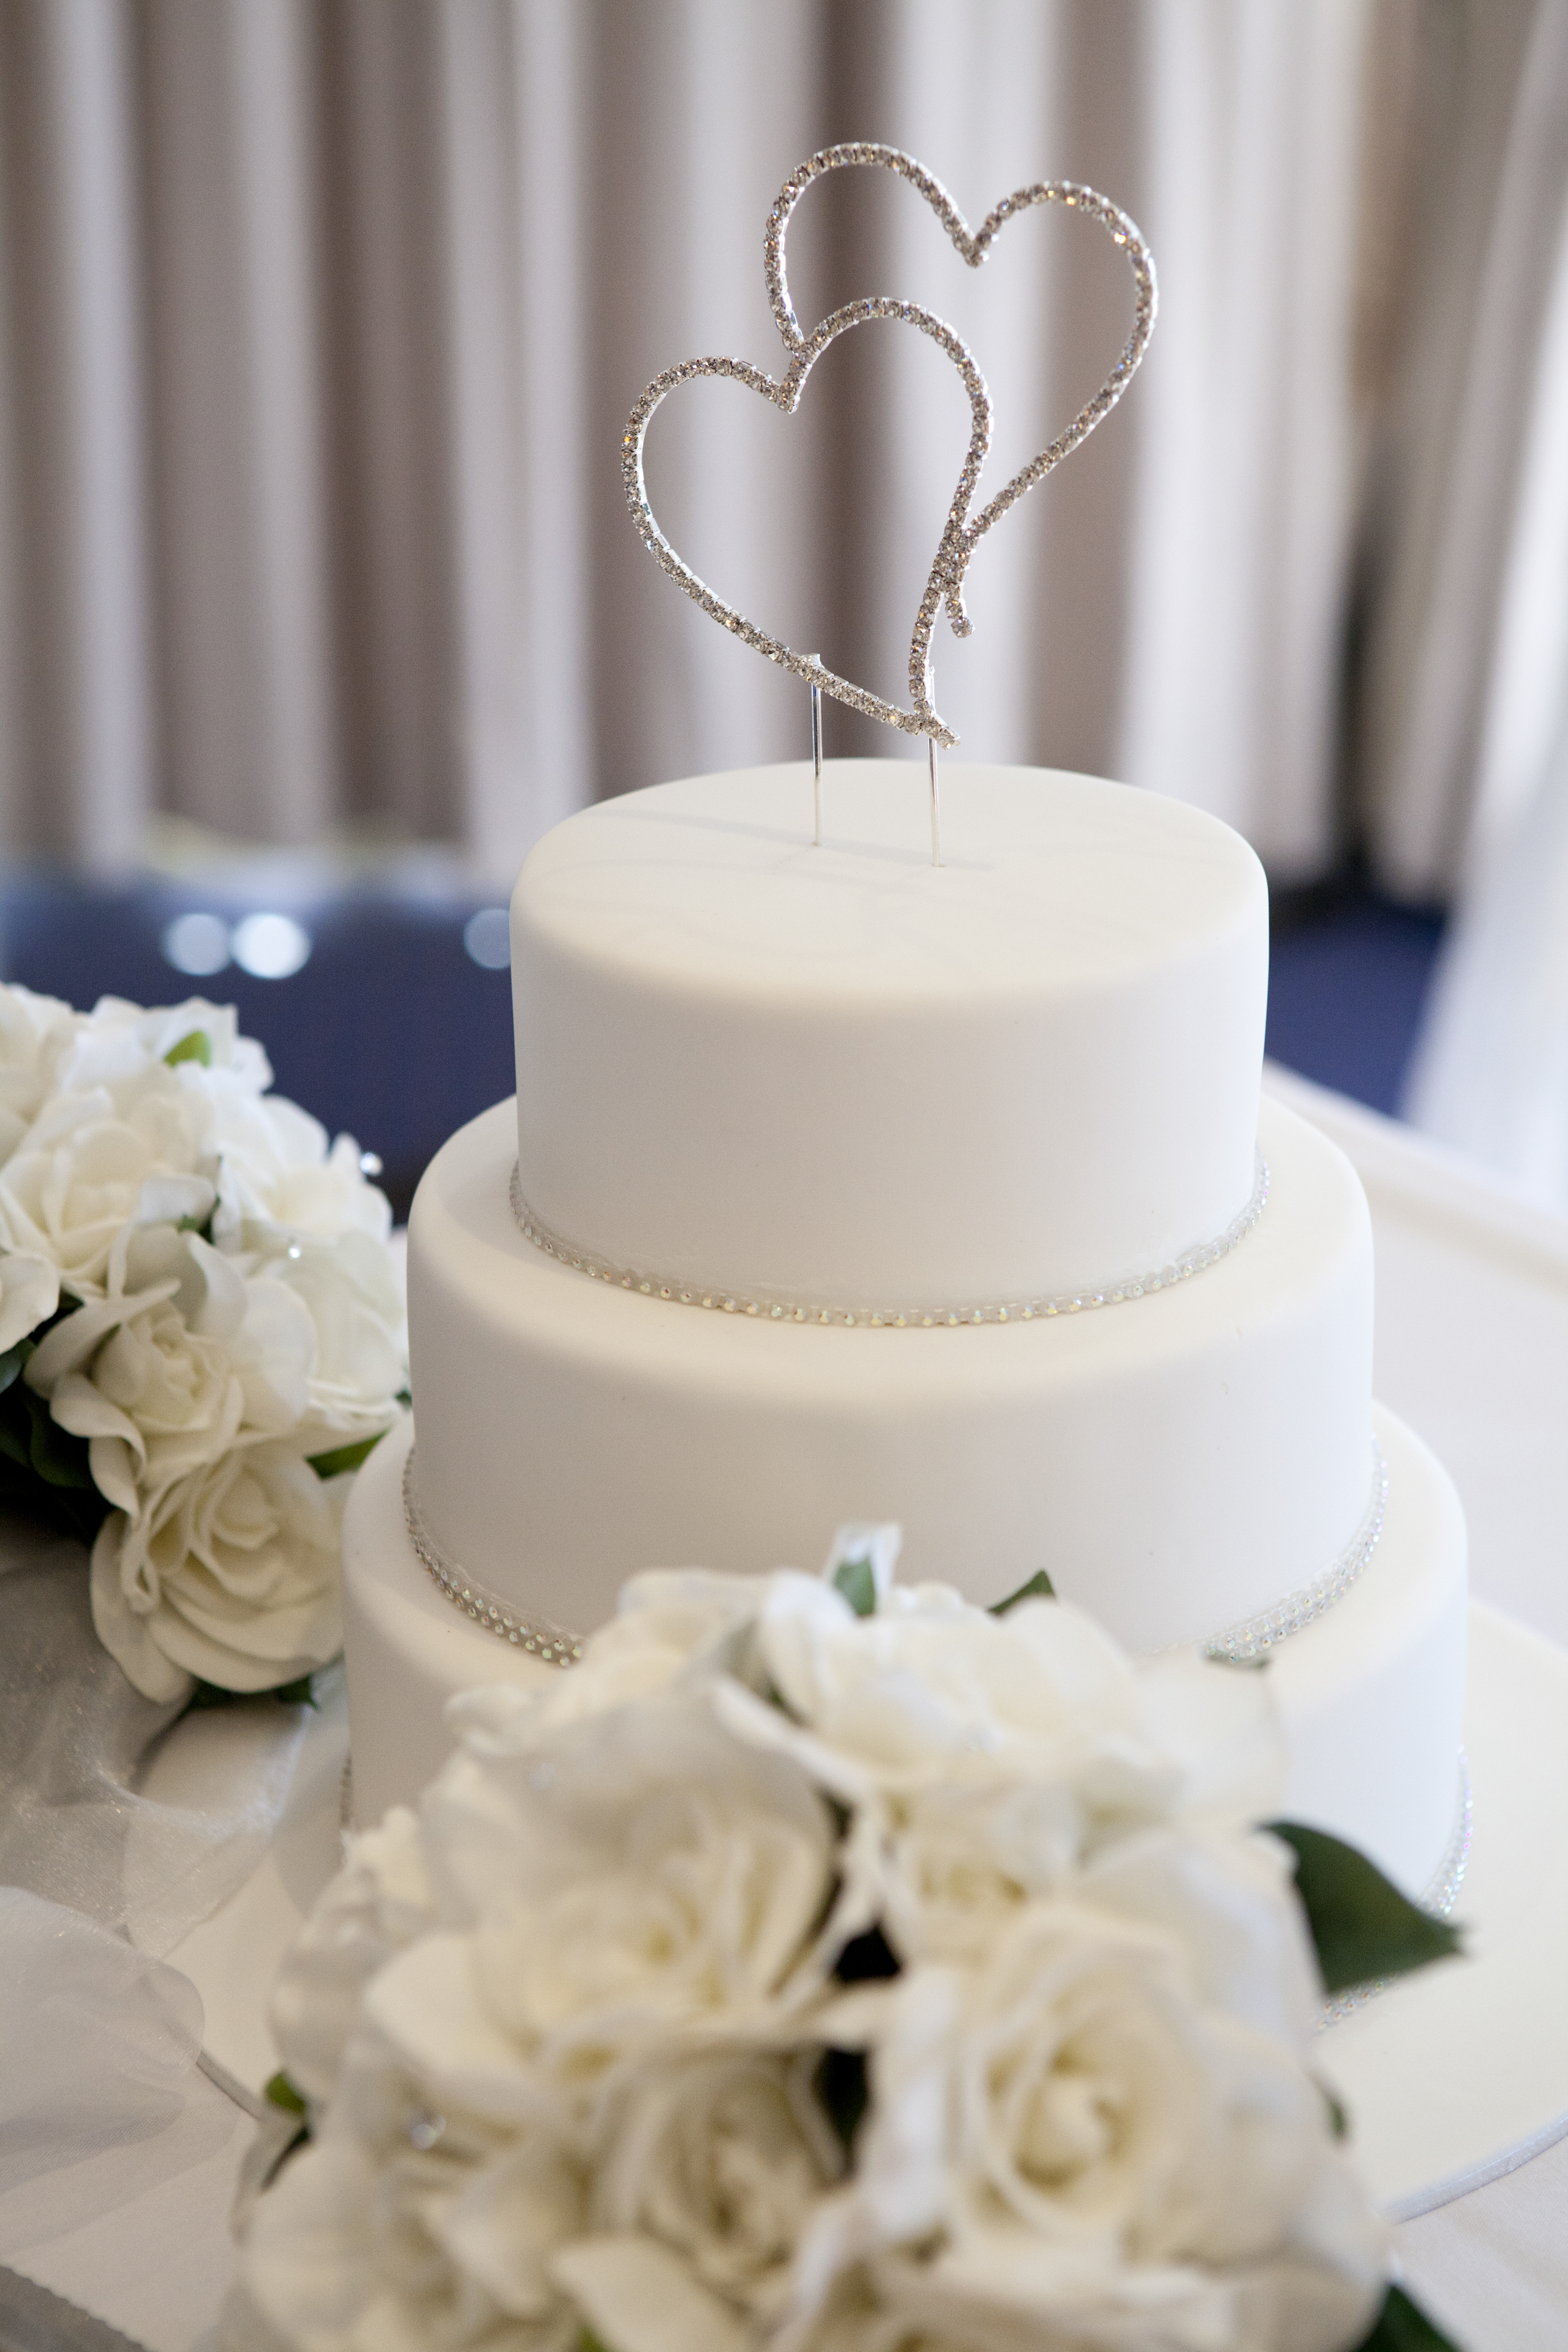 Wedding Cake Inspiration | The Party Connection | Your liaison to ...